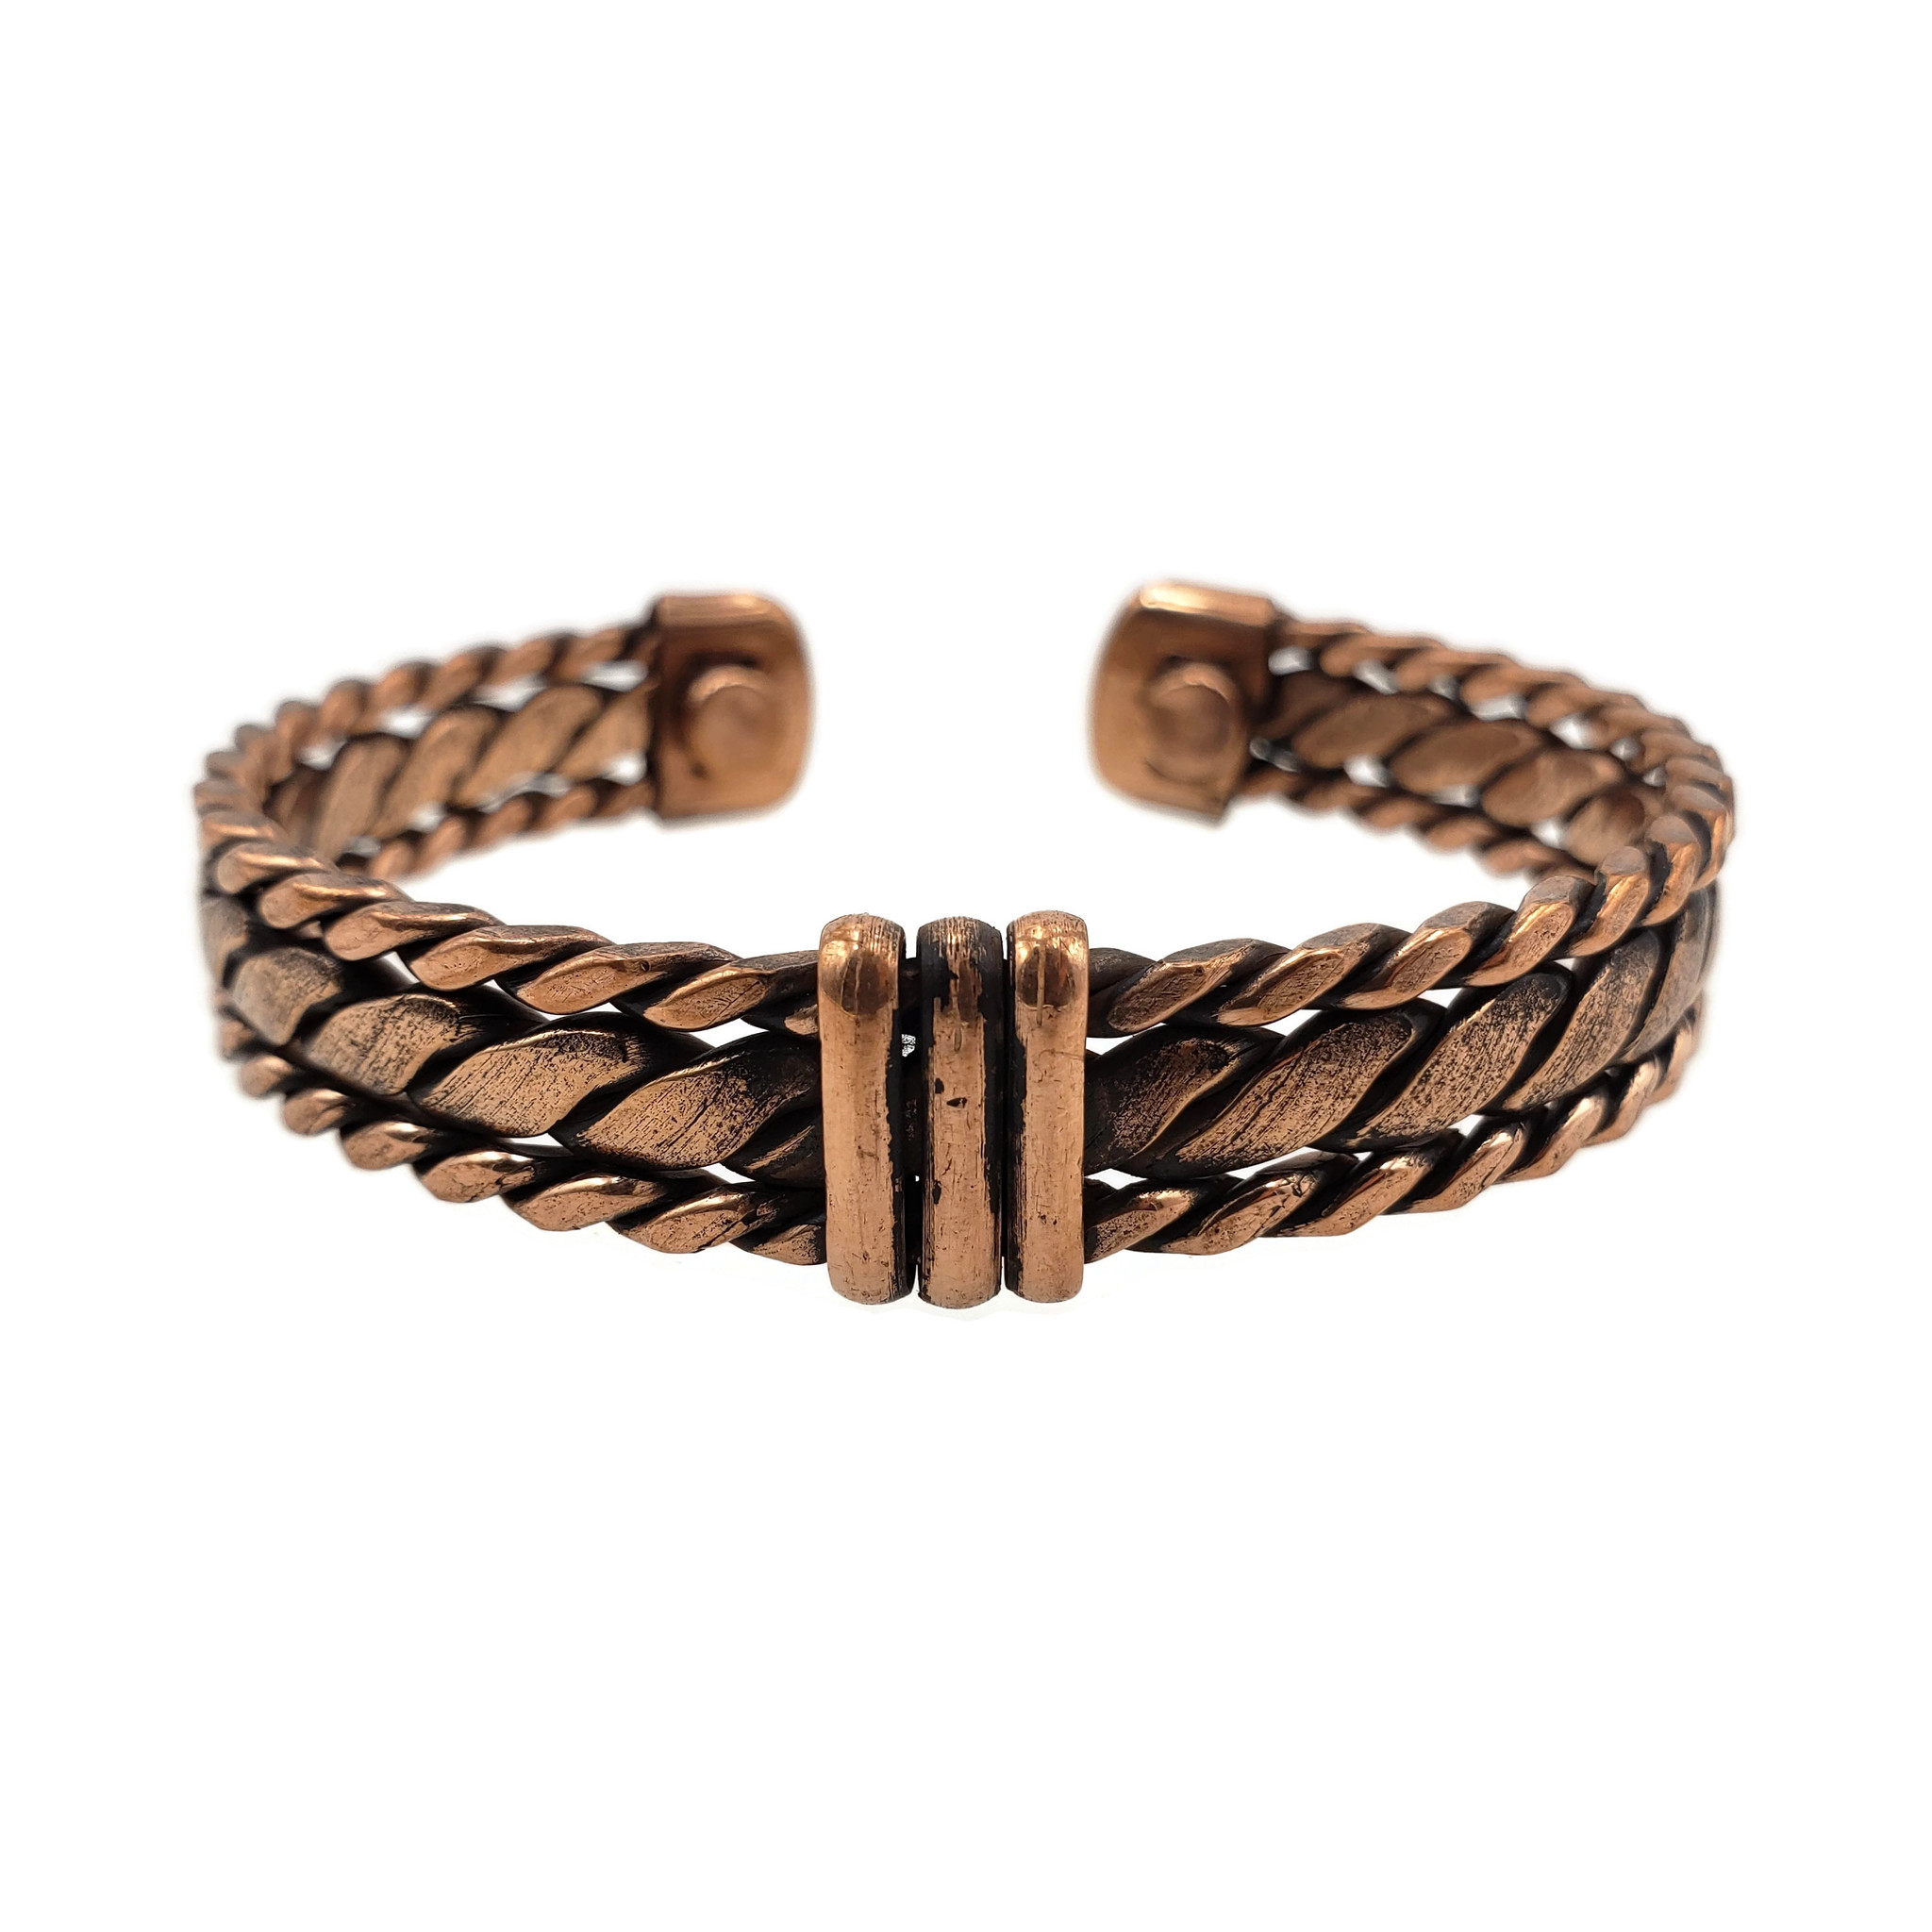 Three layer twisted copper cuff with magnets for energetic healing.